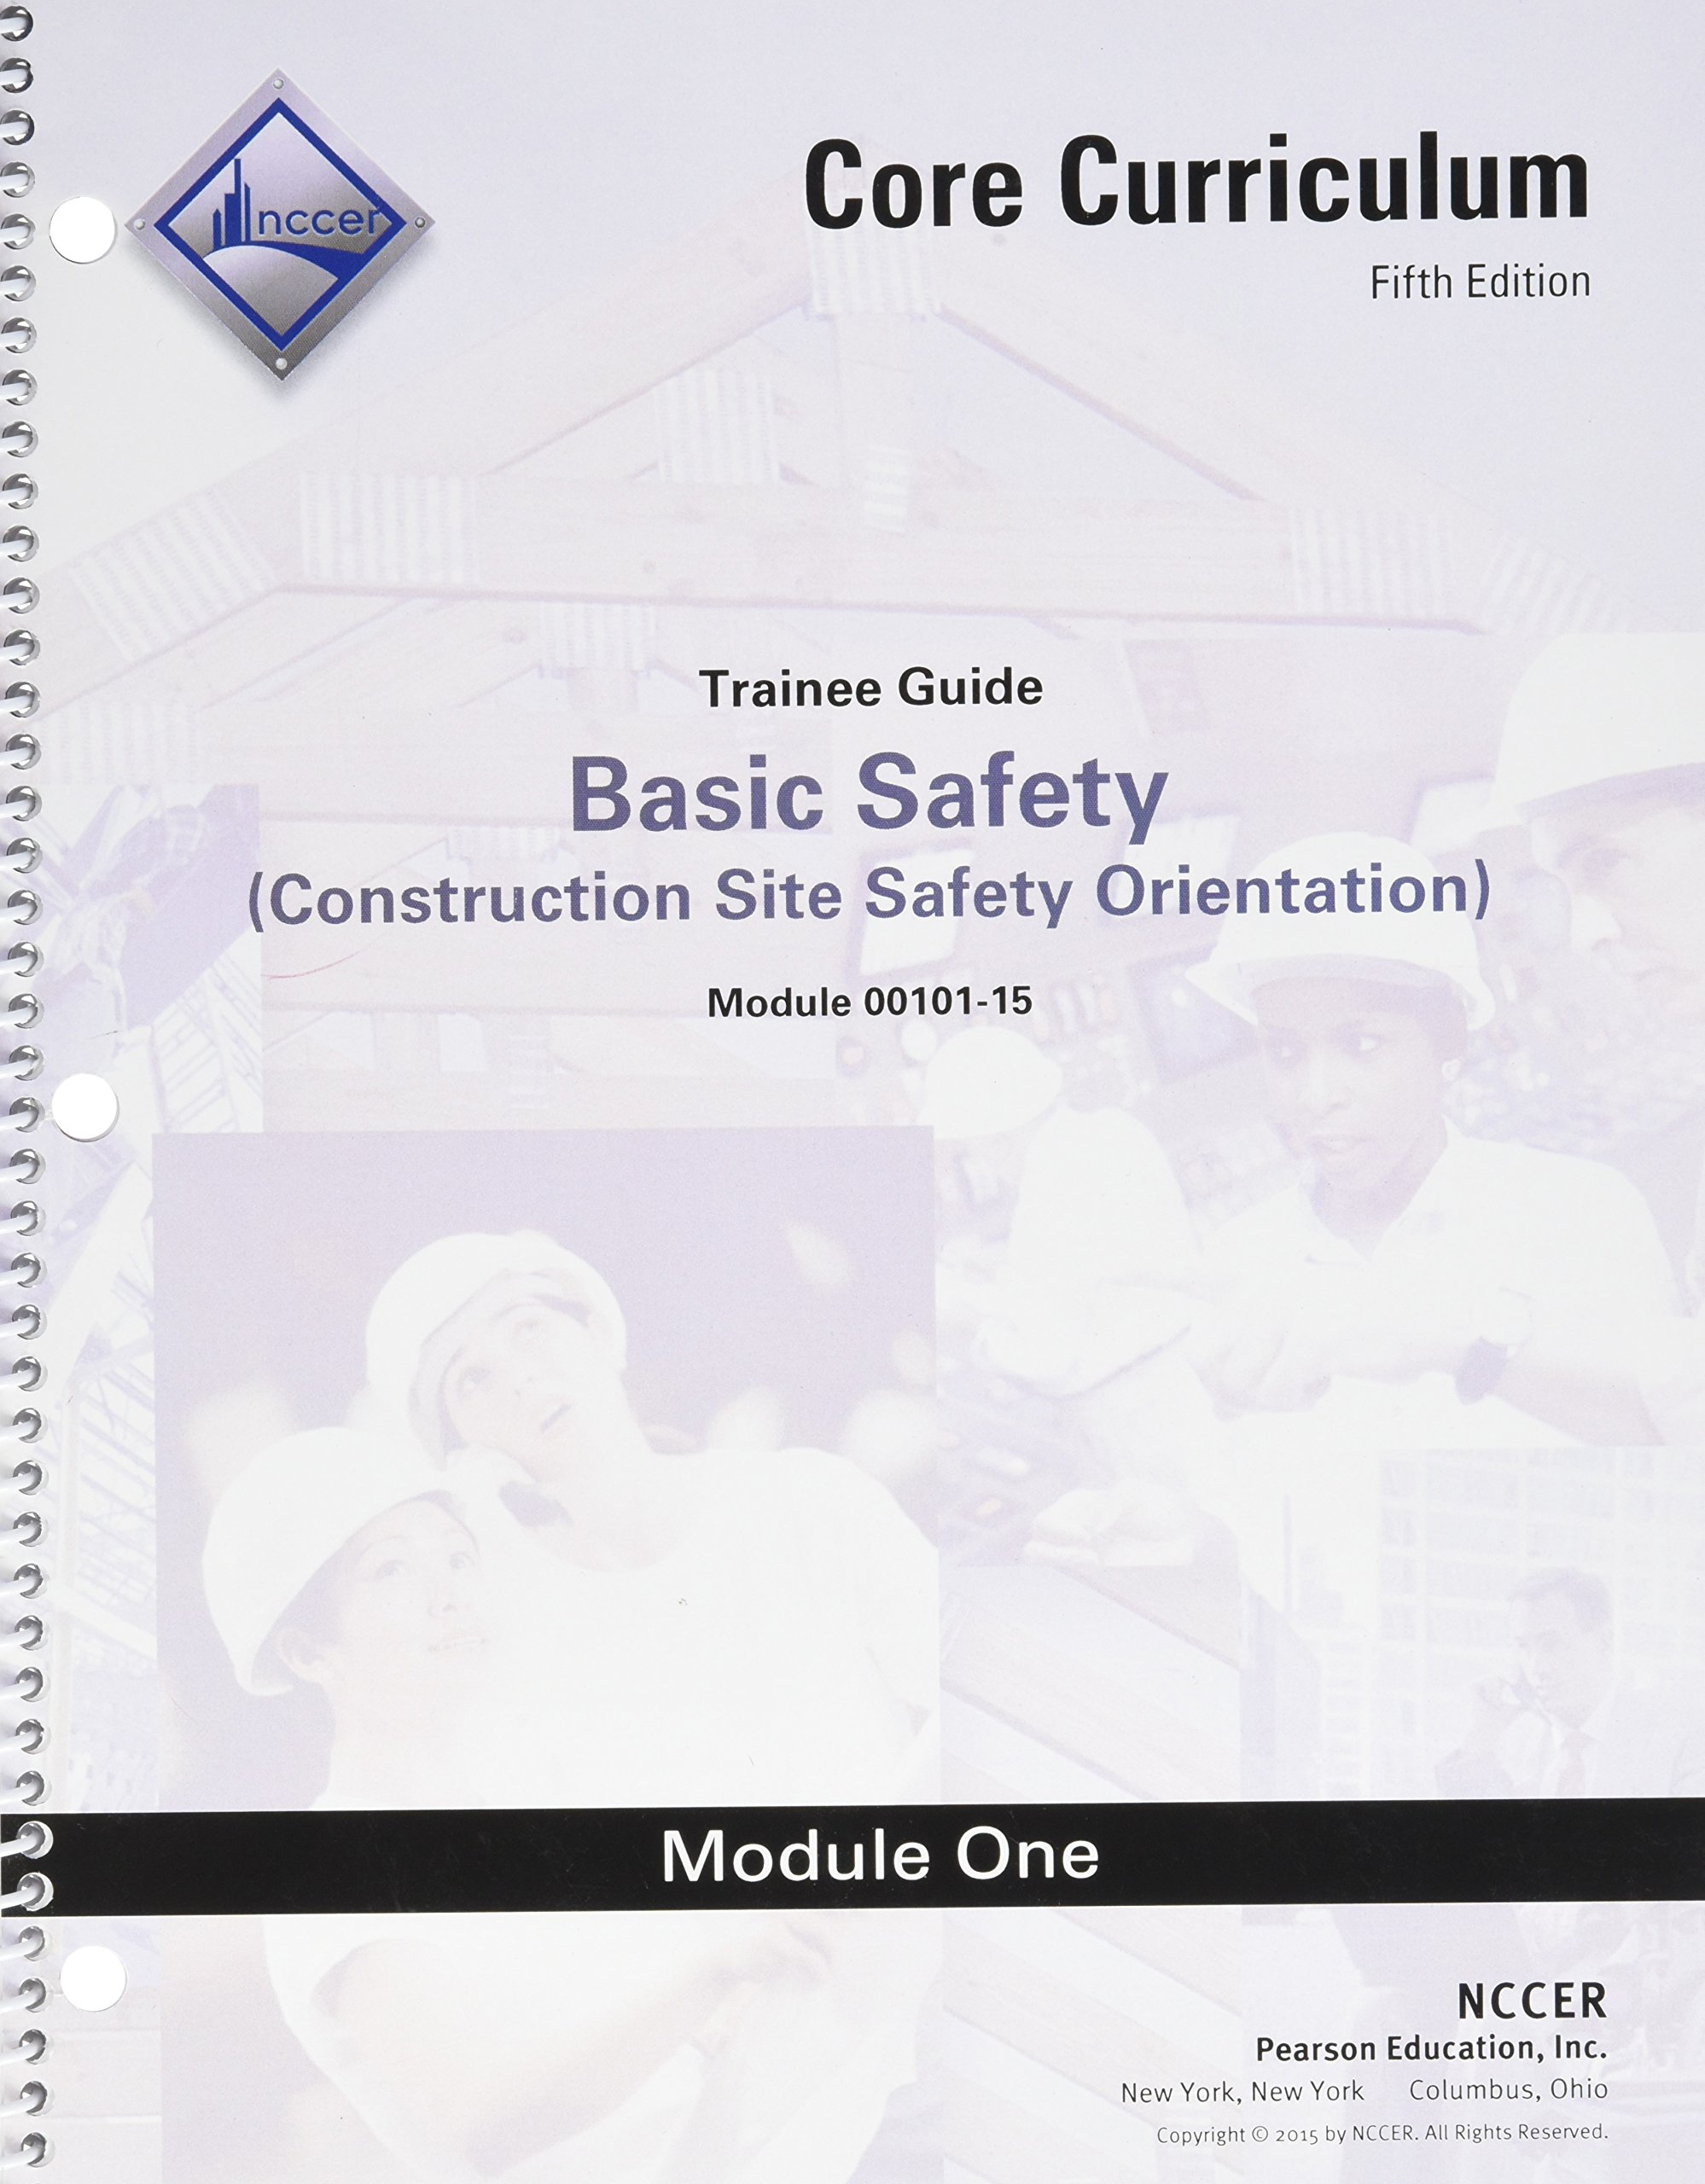 00101 15 basic safety trainee guide nccer 9780134075563 amazon 00101 15 basic safety trainee guide nccer 9780134075563 amazon books fandeluxe Image collections